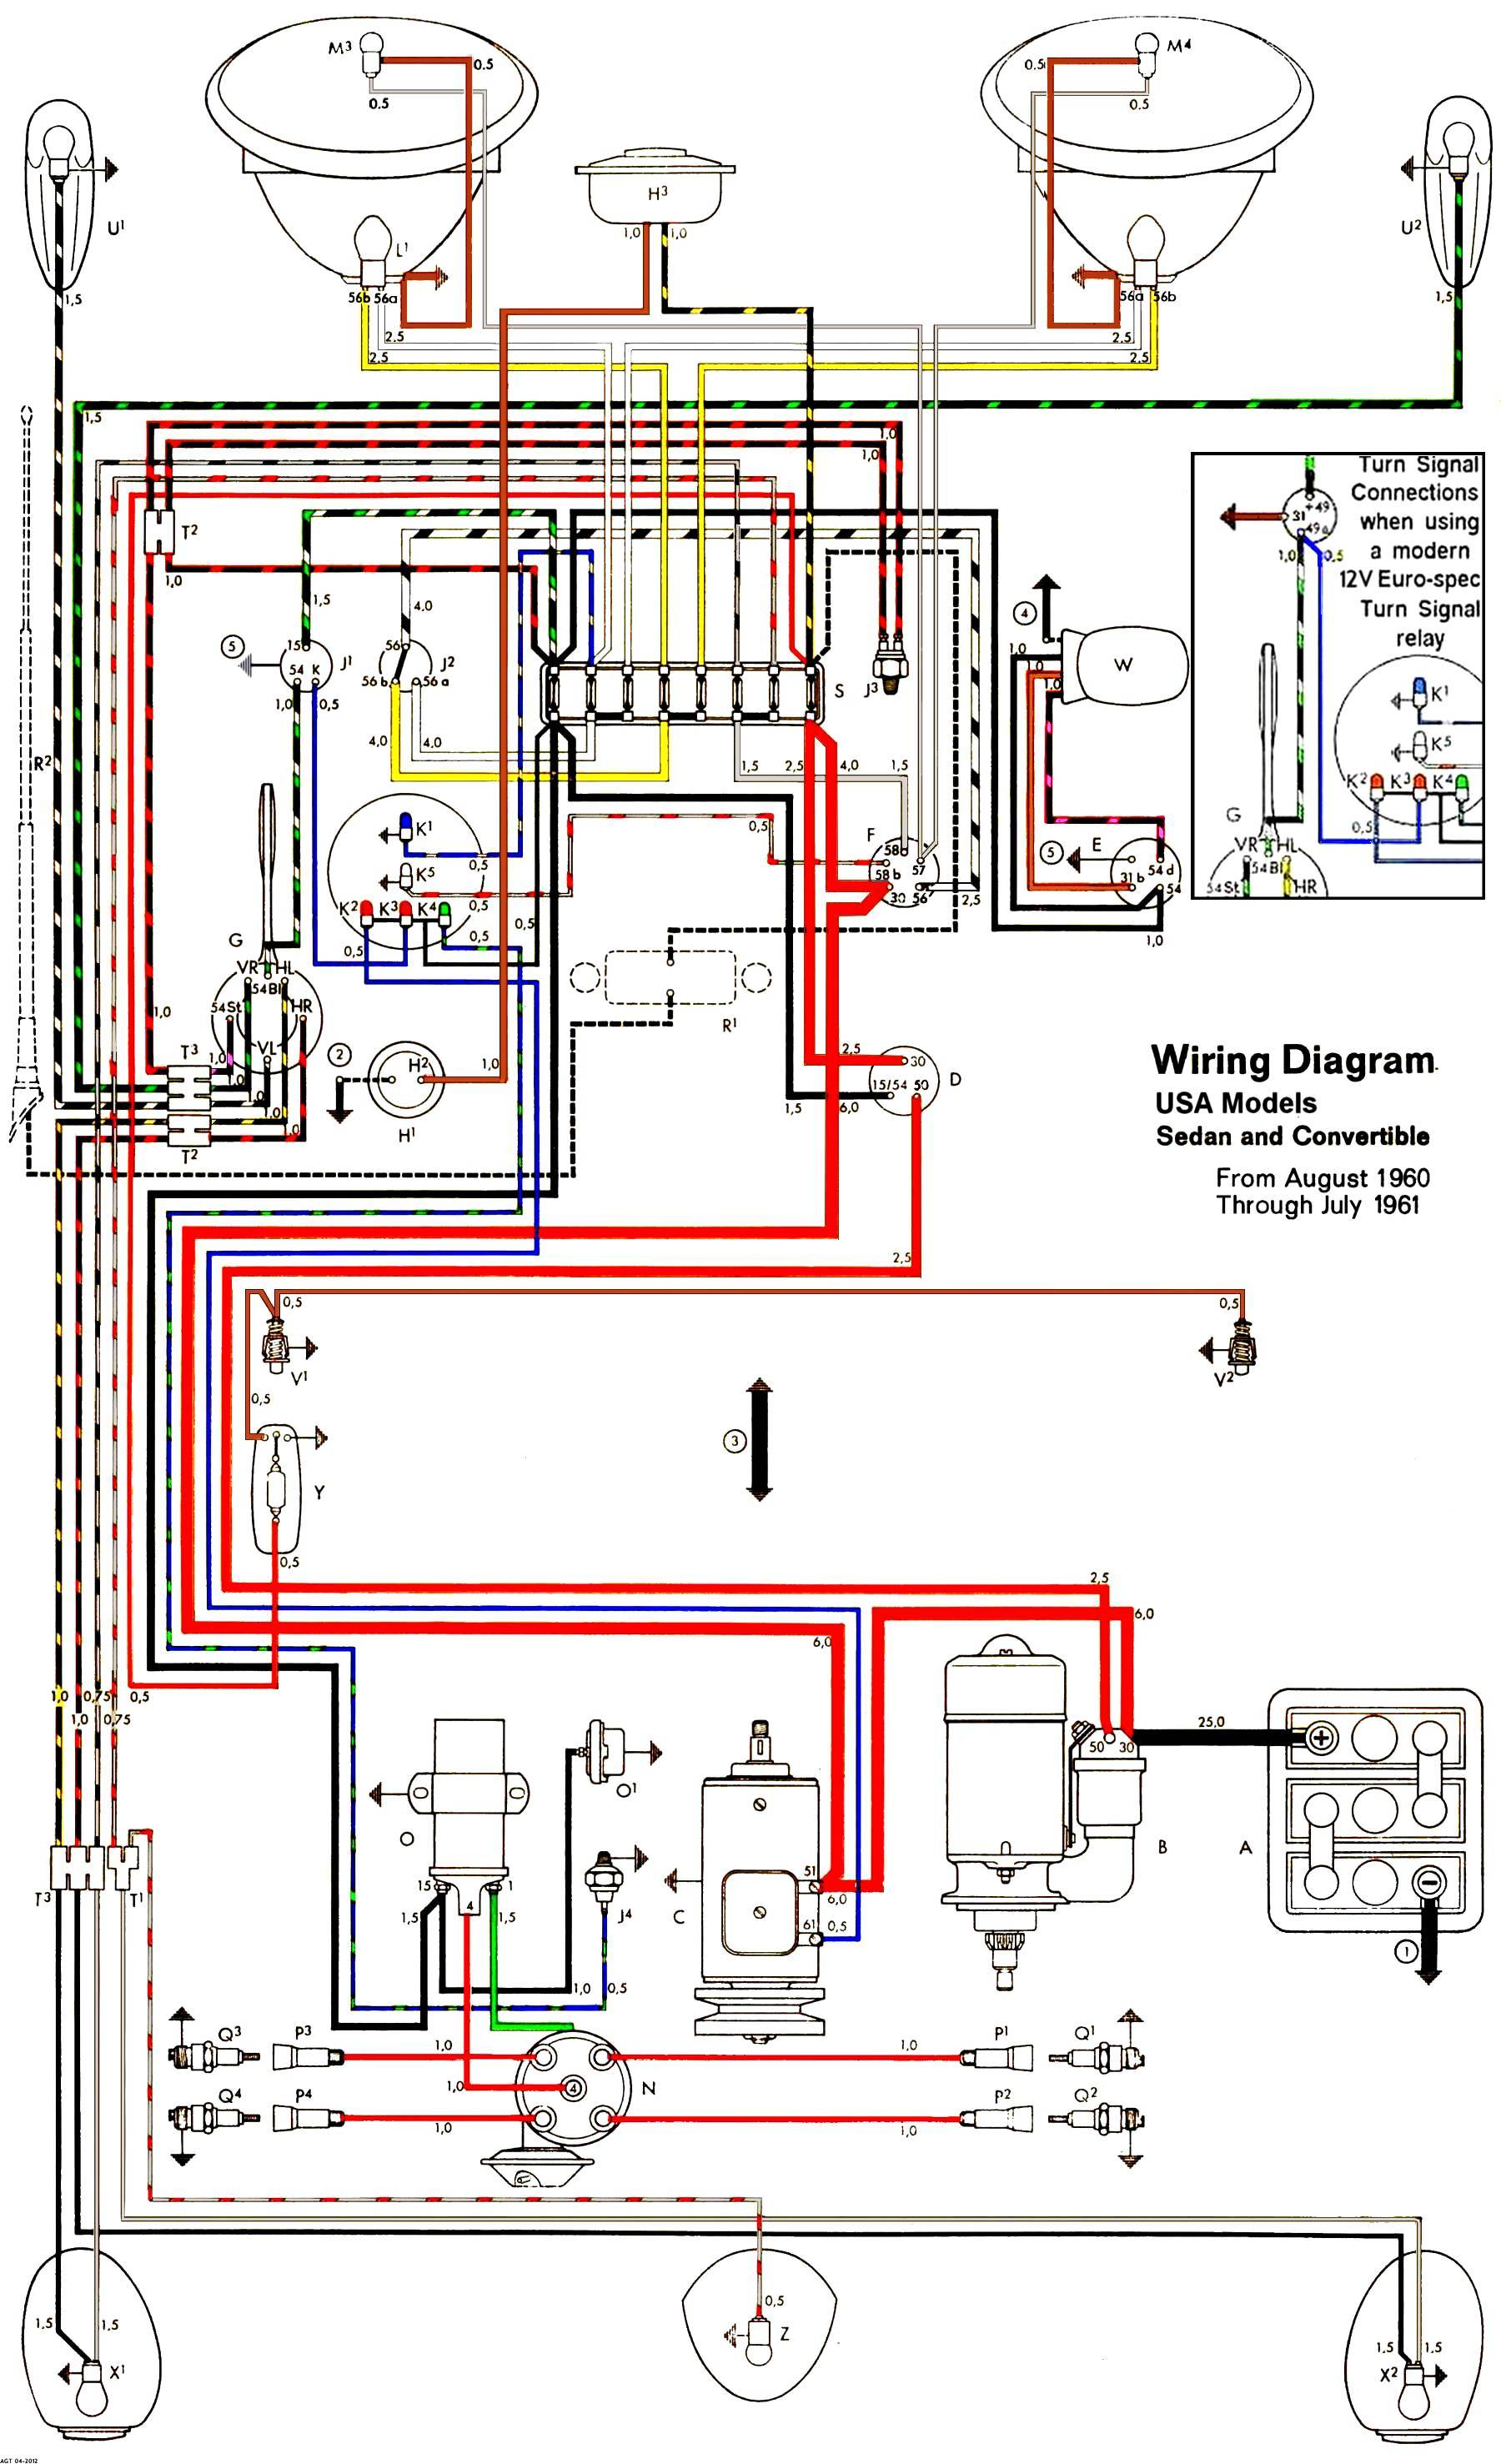 Type 1 Wiring Diagrams Back Light Wire Diagram